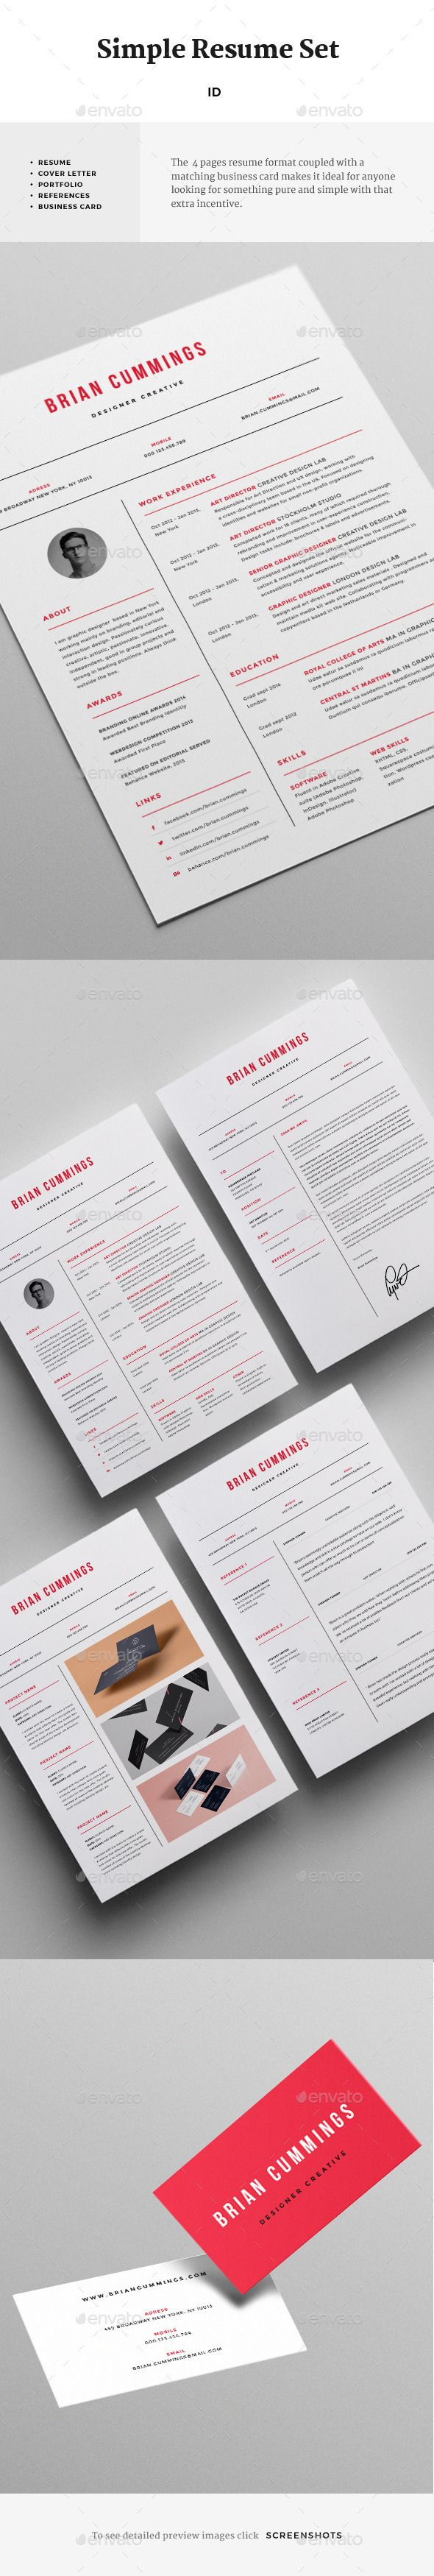 Simple Resume Set Template design Download httpgraphicrivernet